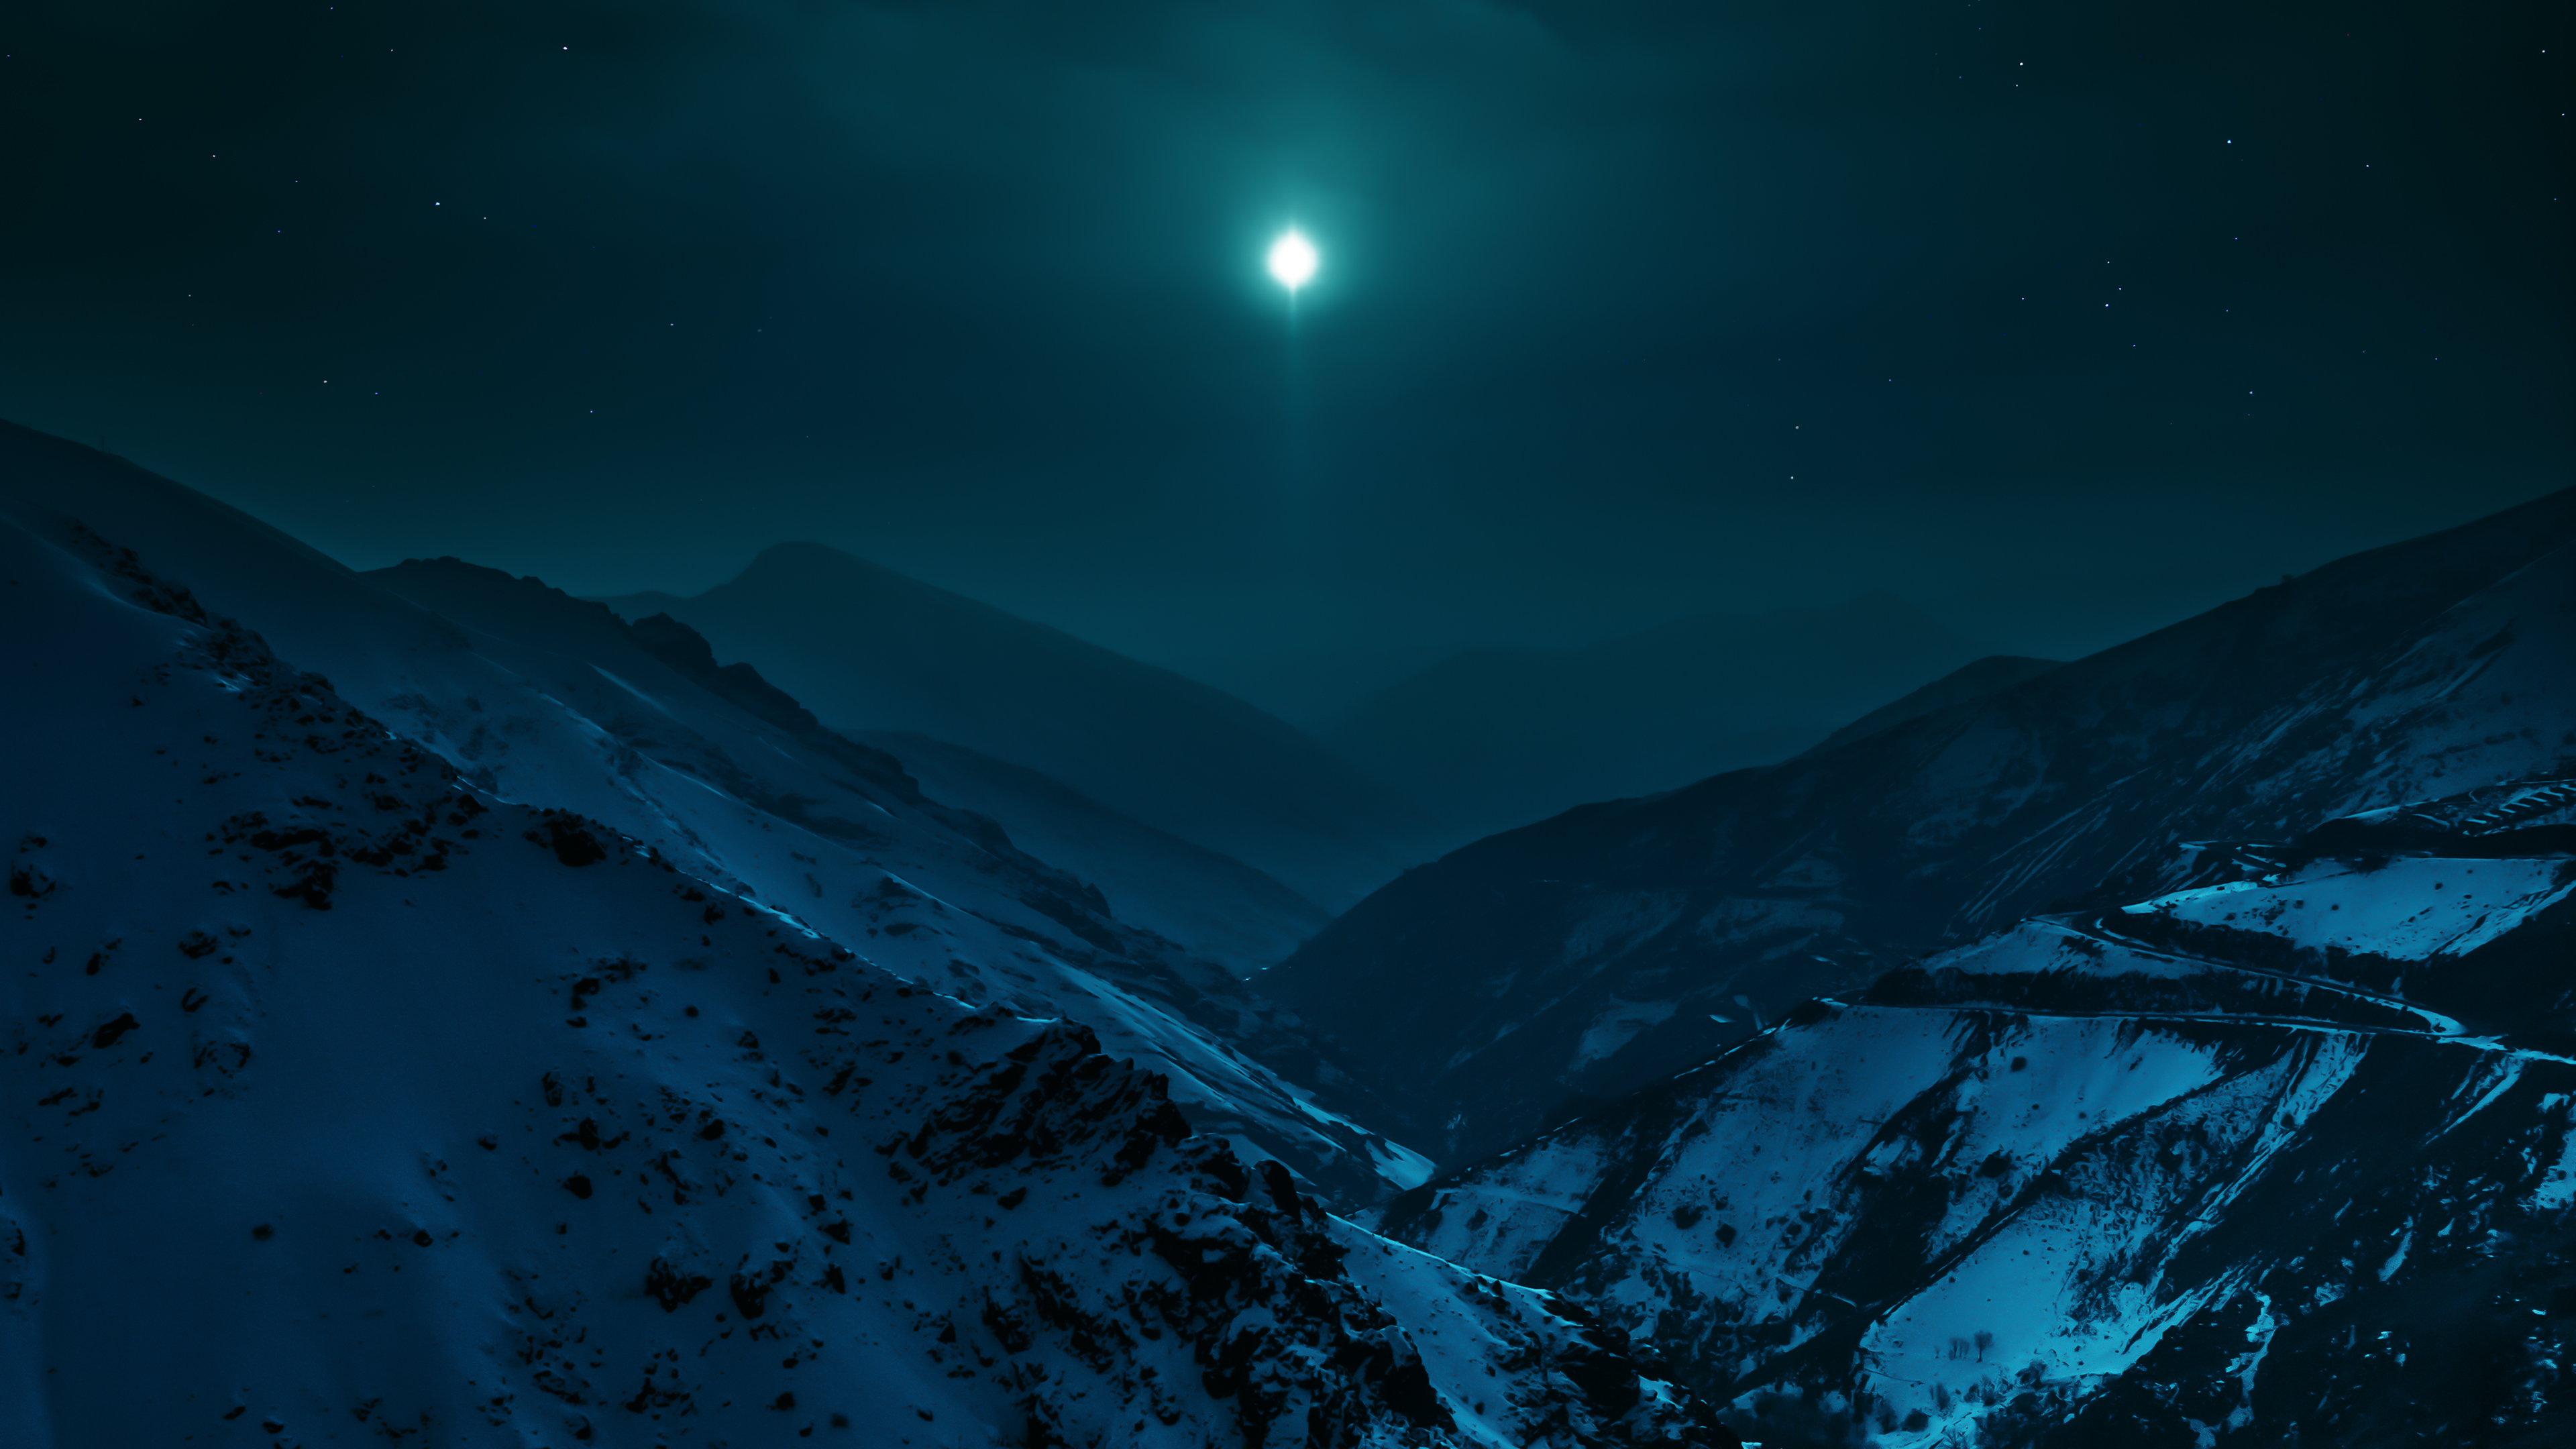 Wallpaper Mountains with moonlight